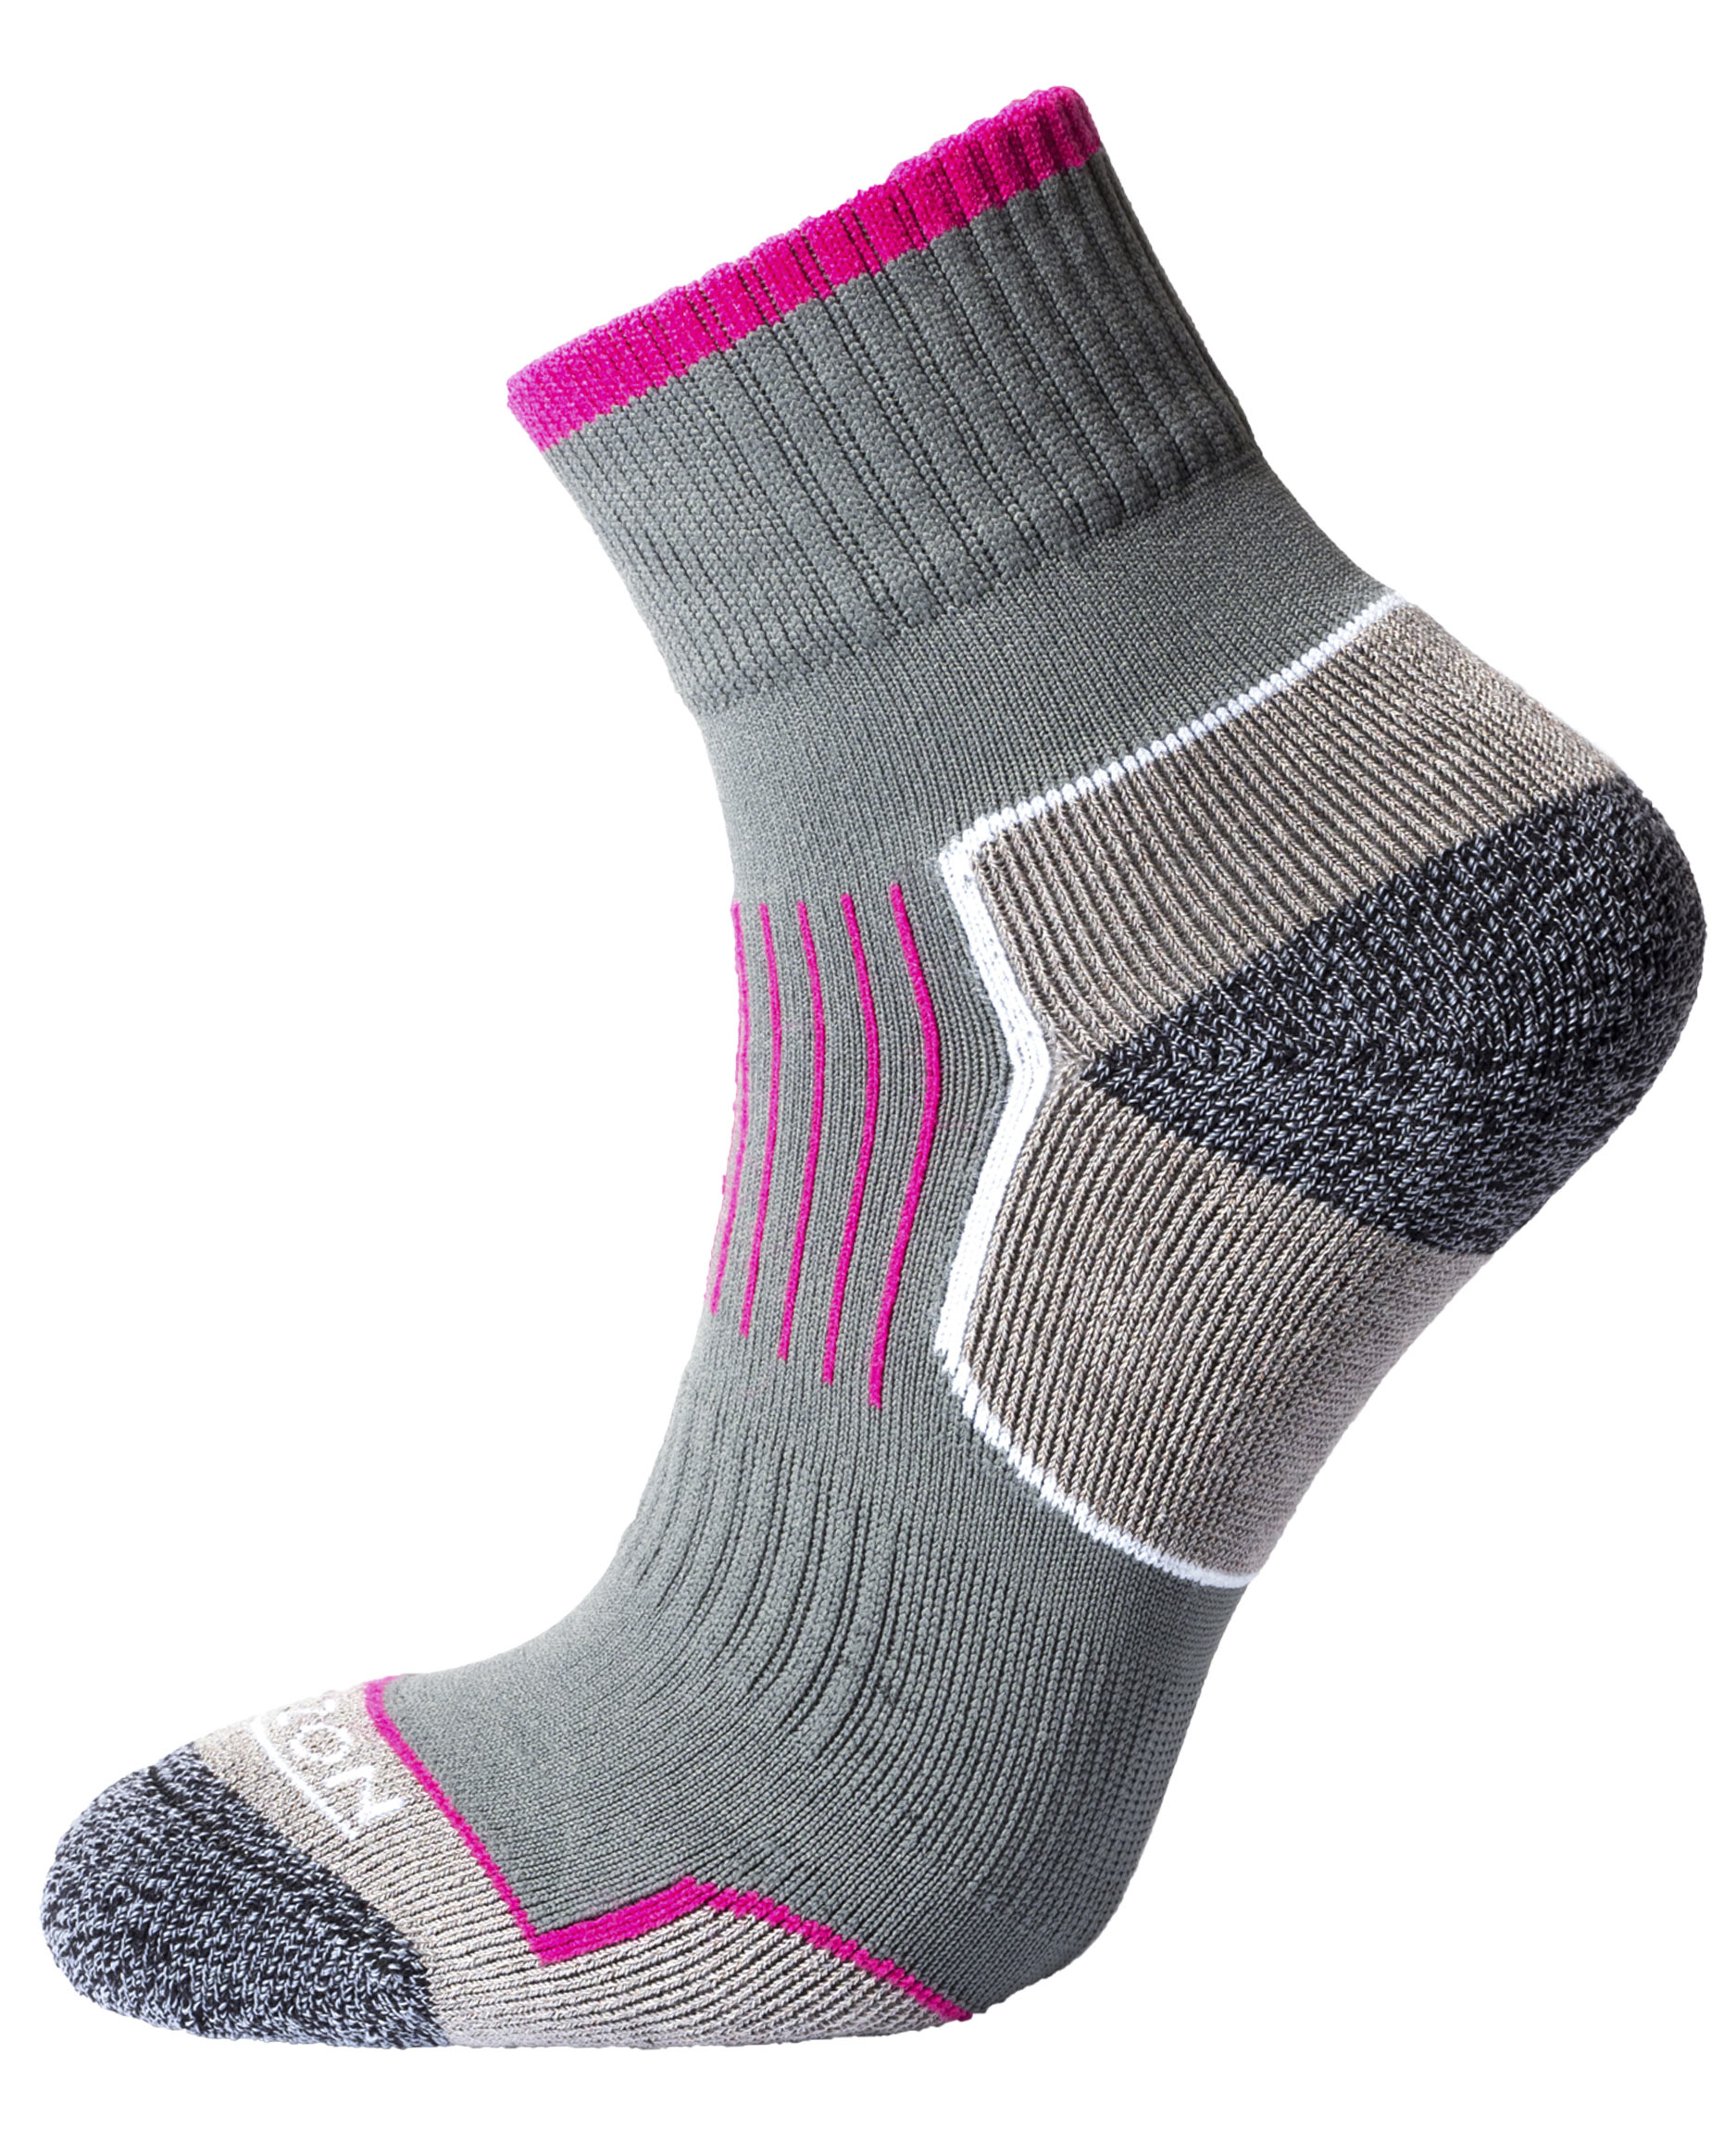 Performance Atomic 29 Sock Charcoal Cerise